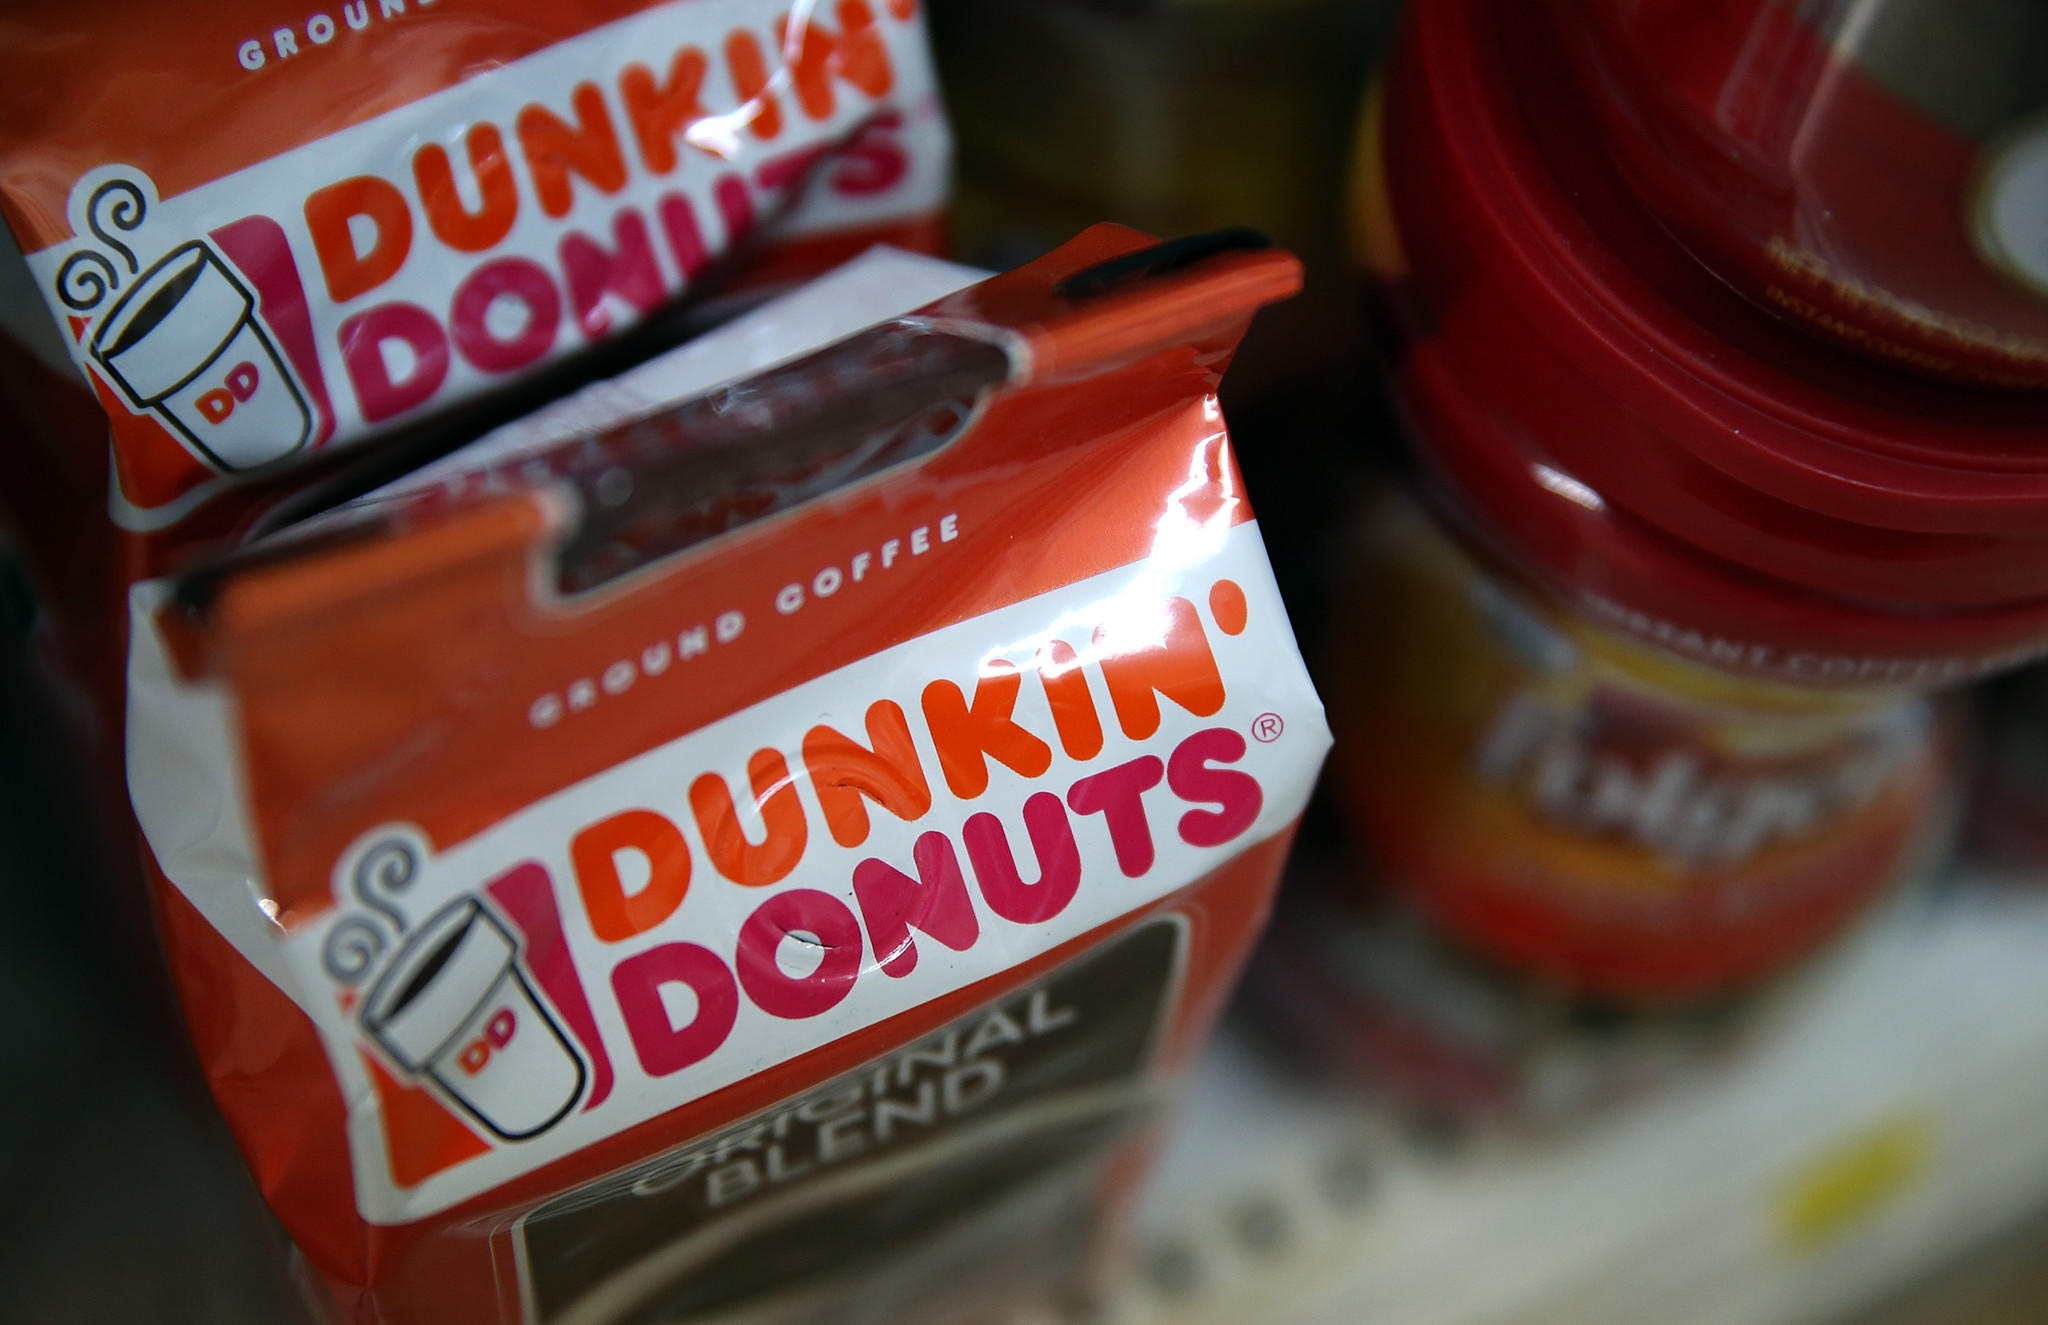 Dunkin' Donuts and Folgers coffee are displayed on a shelf at a grocery store on June 5, 2014 in San Rafael, California.